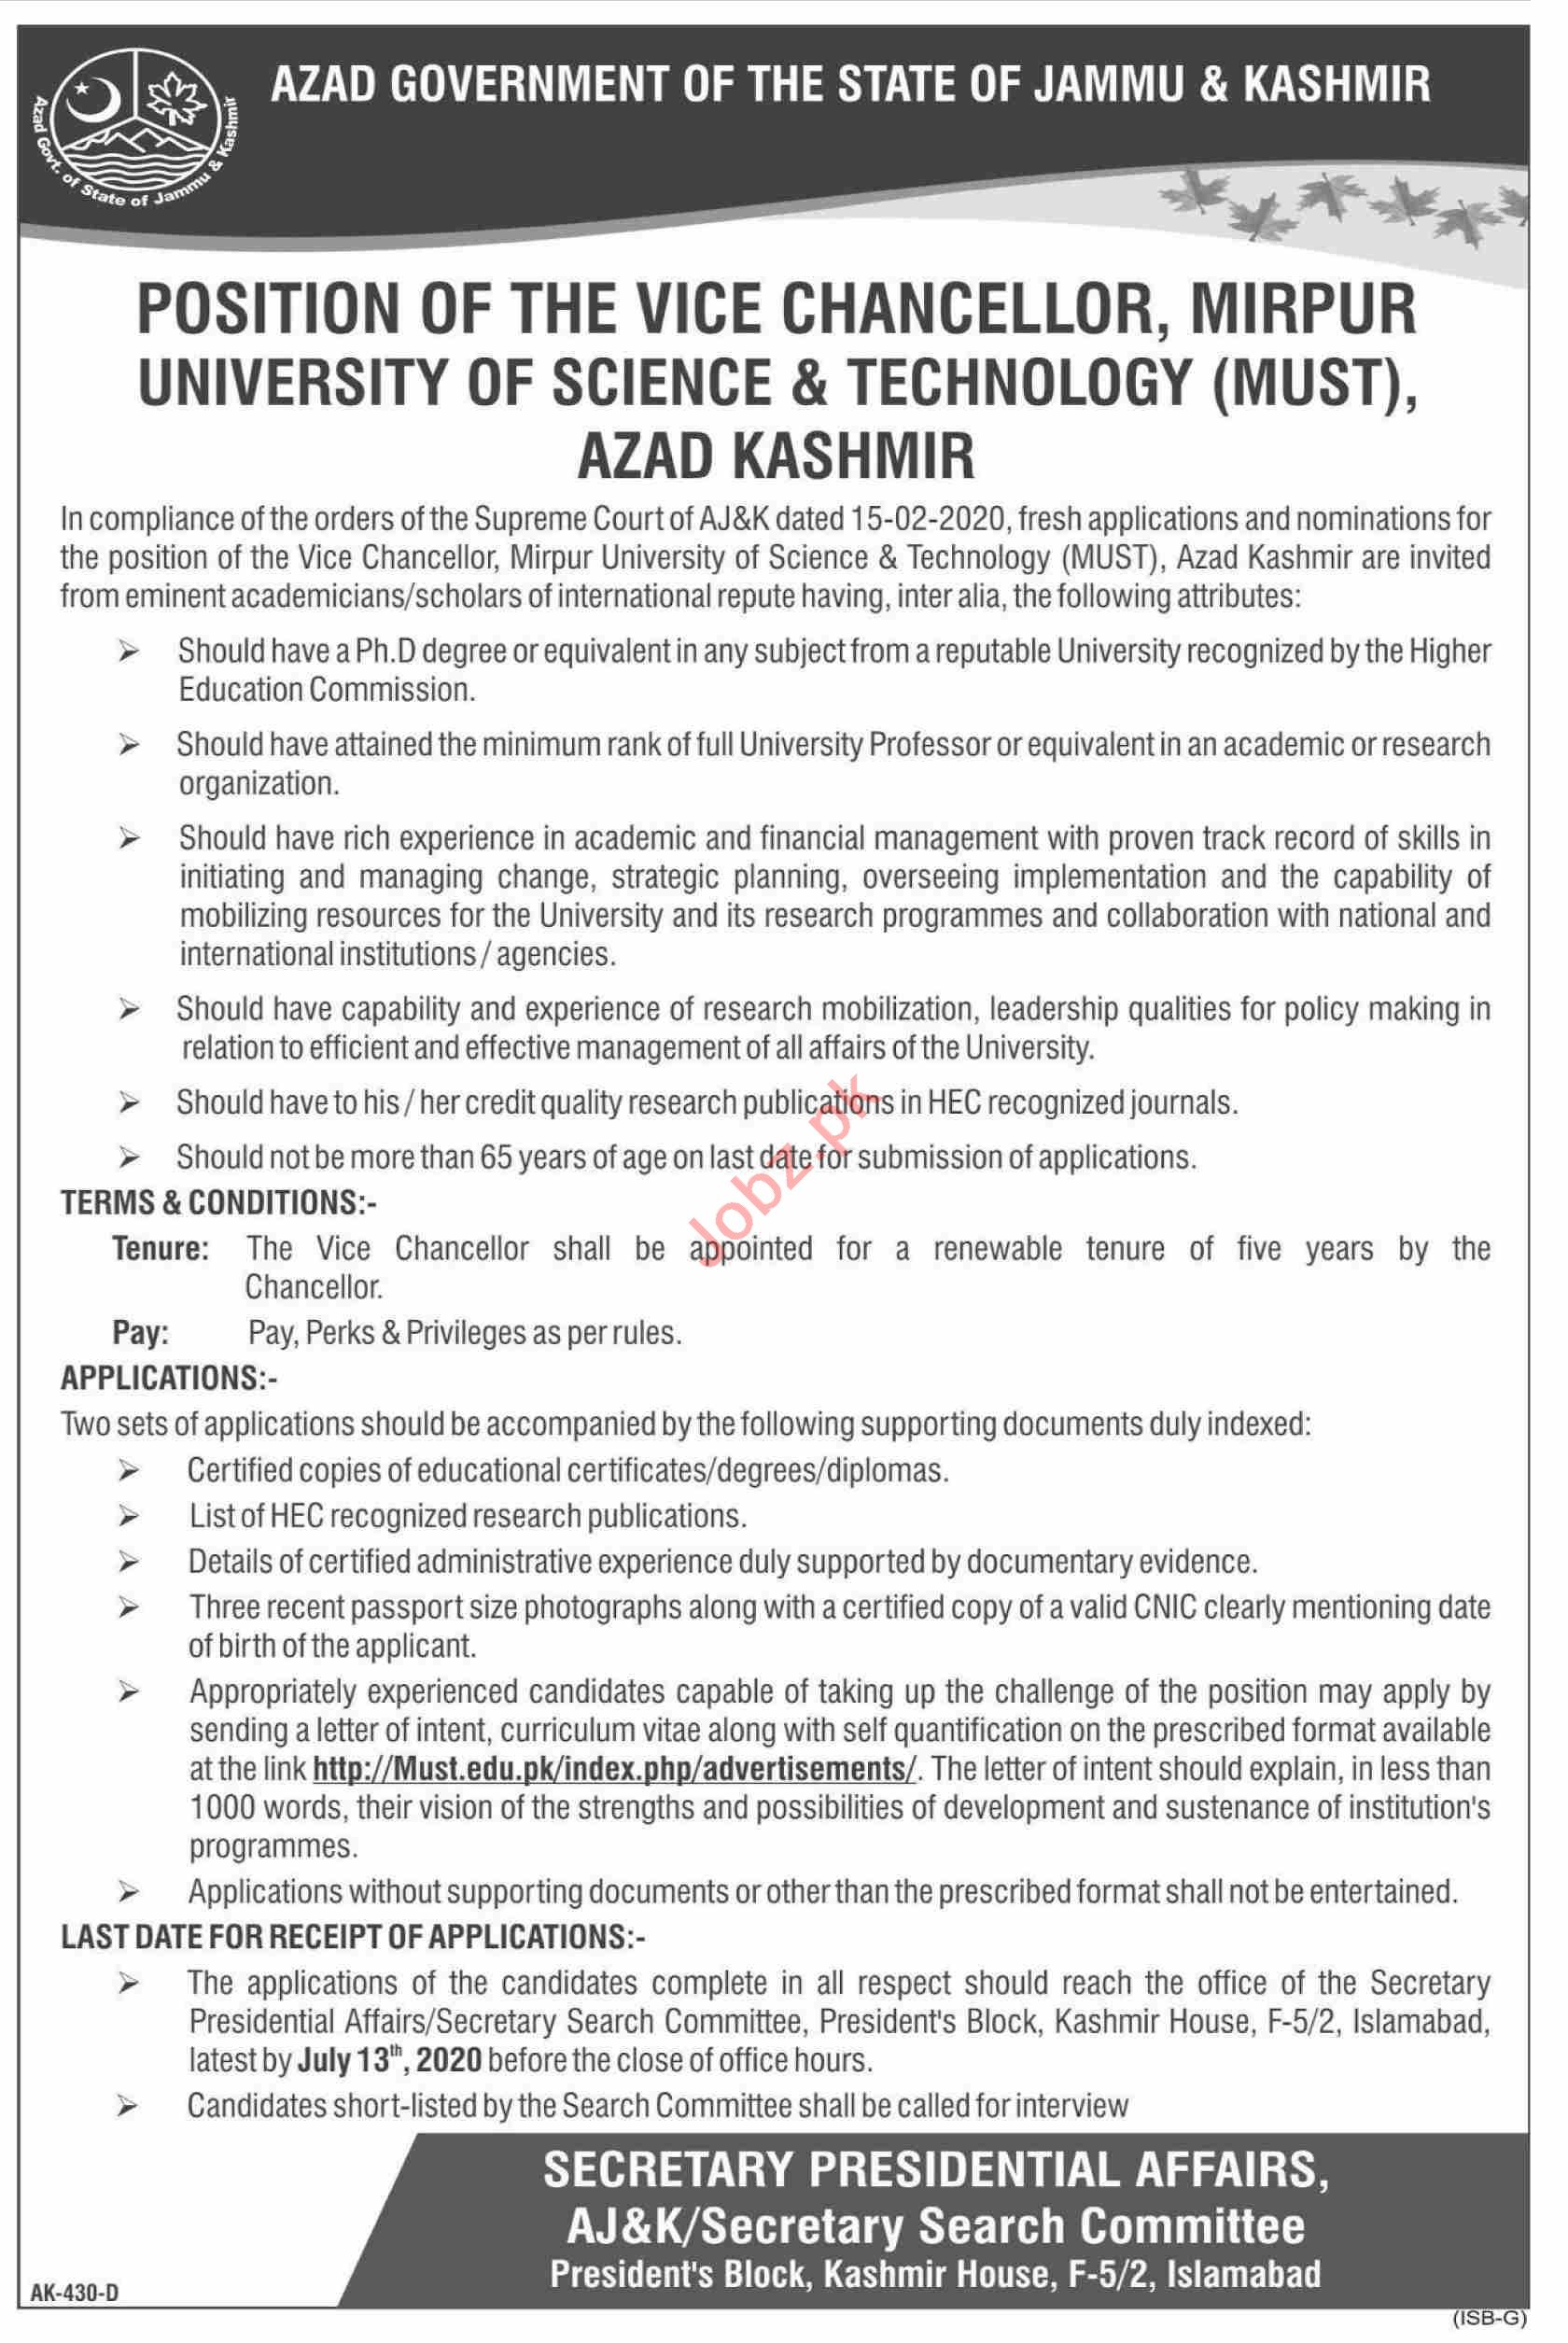 MUST University Mirpur Jobs 2020 for Vice Chancellor